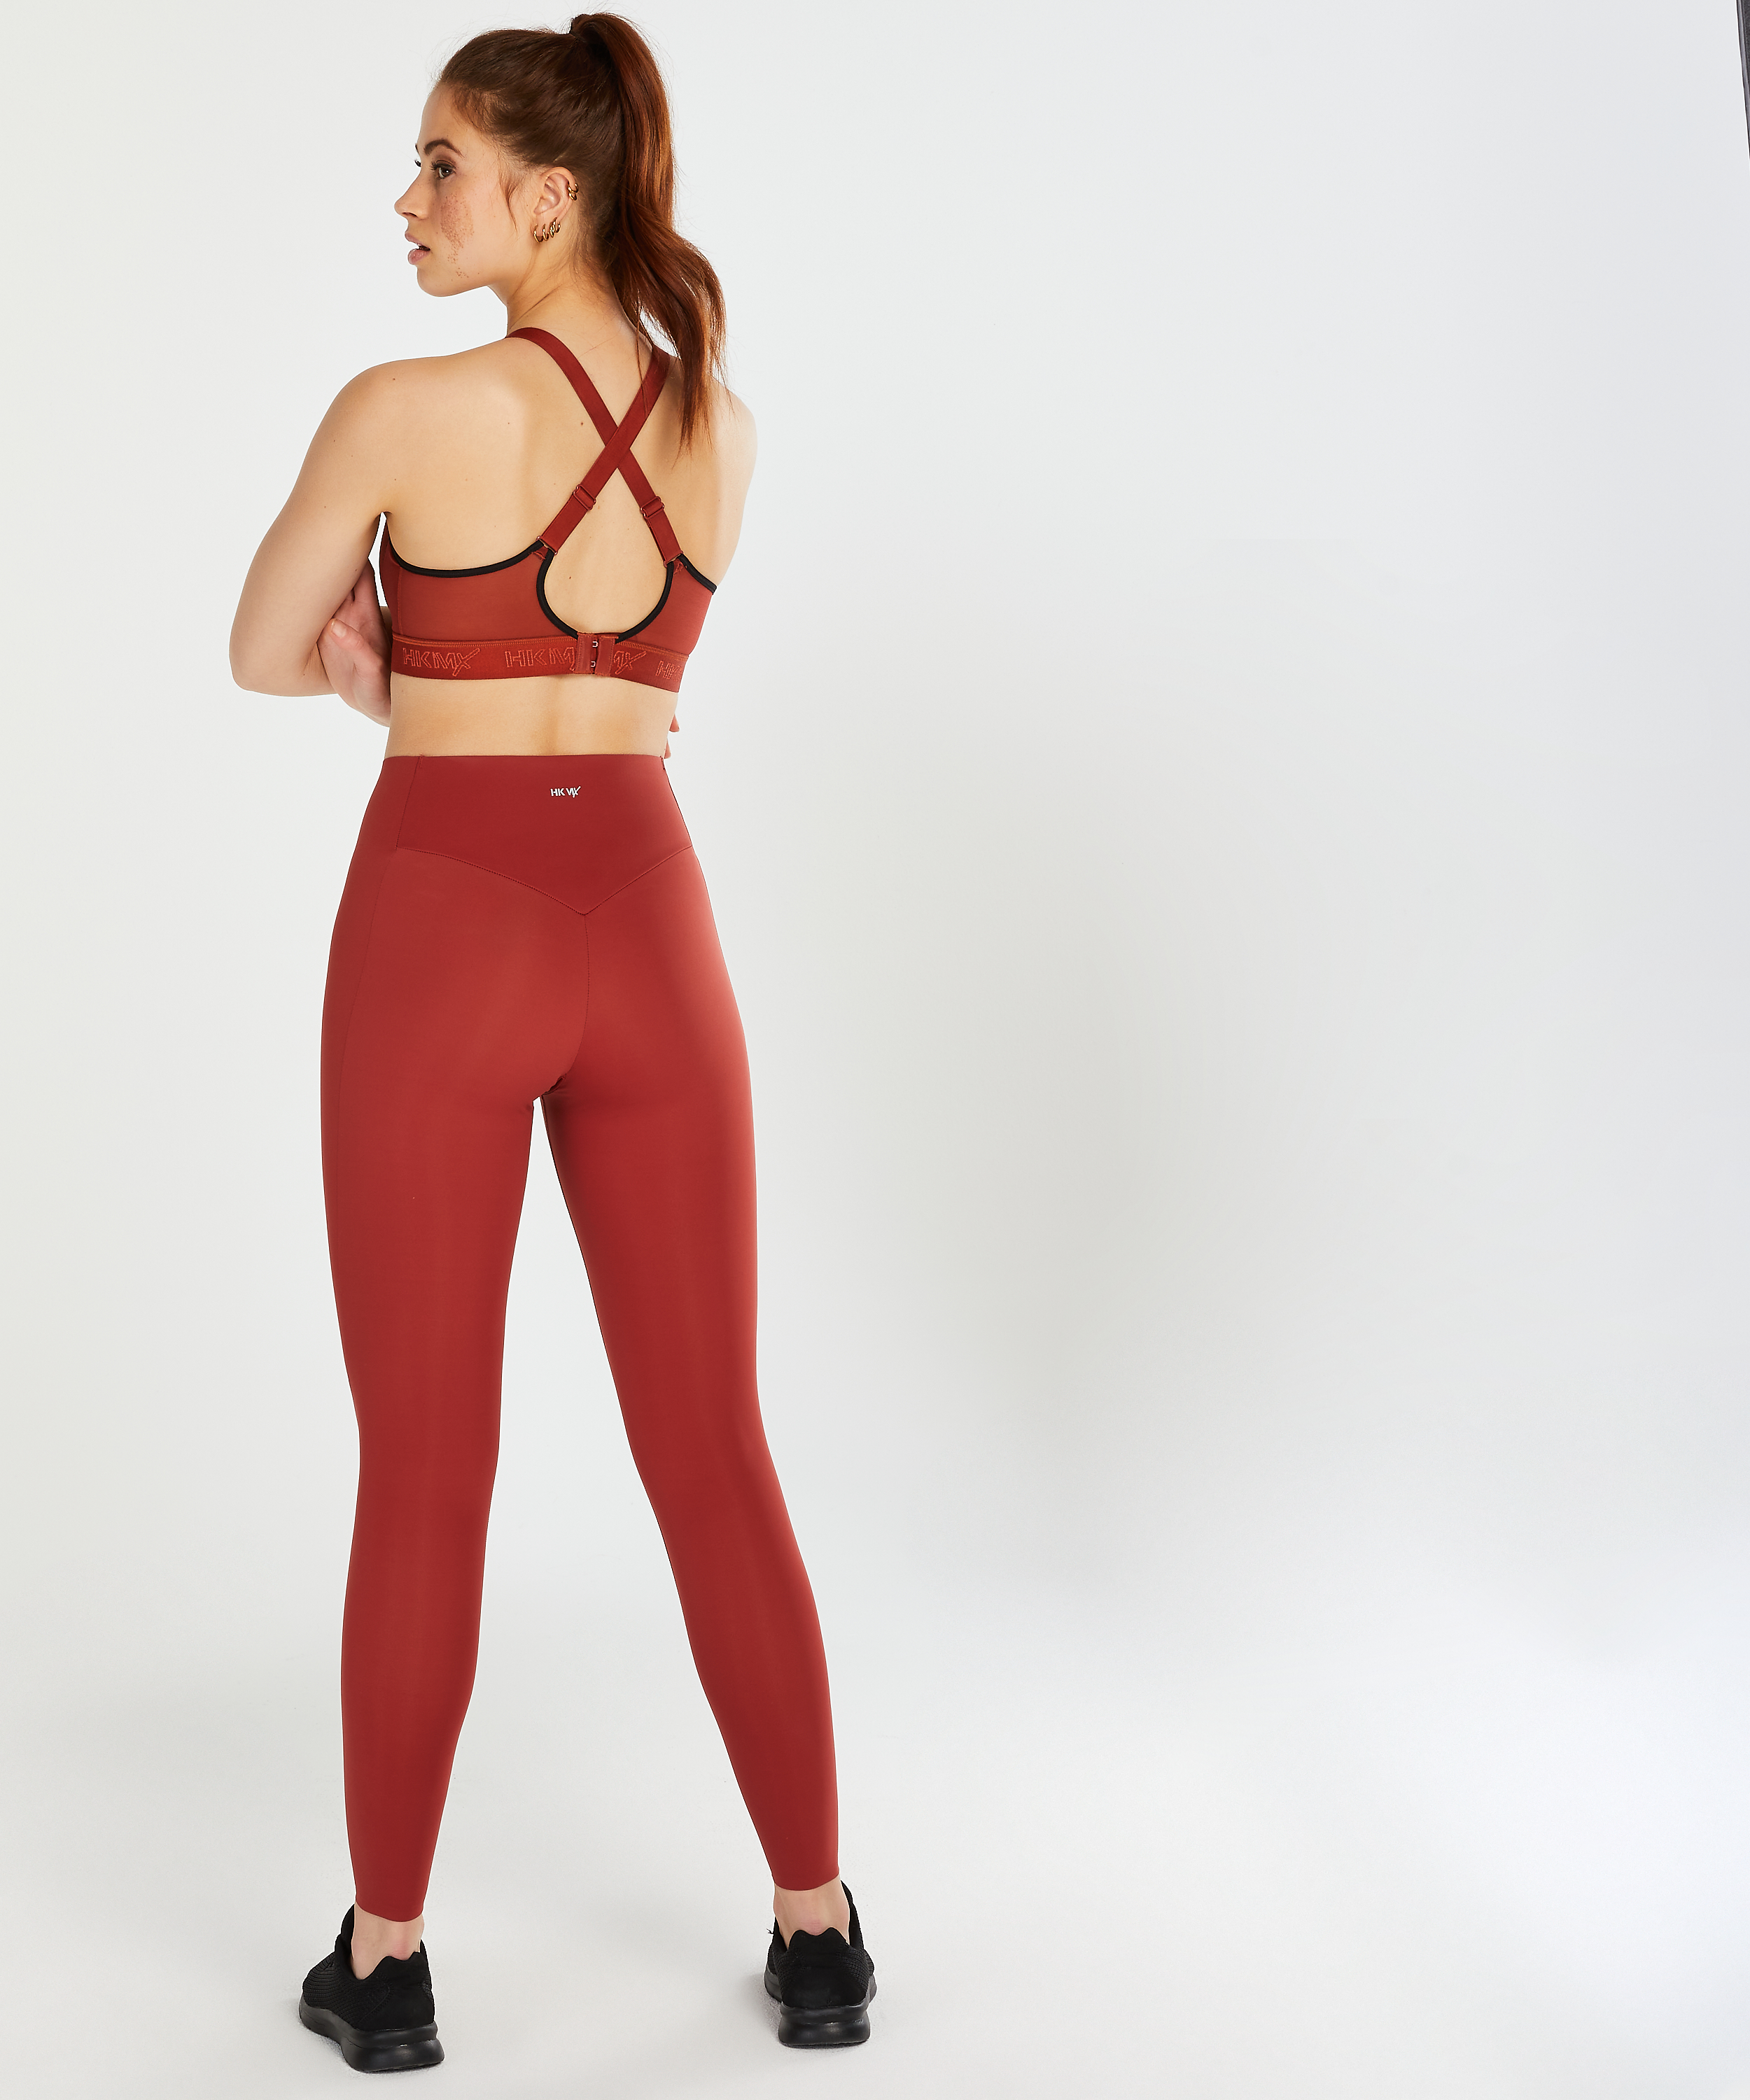 HKMX Sports bra The All Star Level 2, Red, main